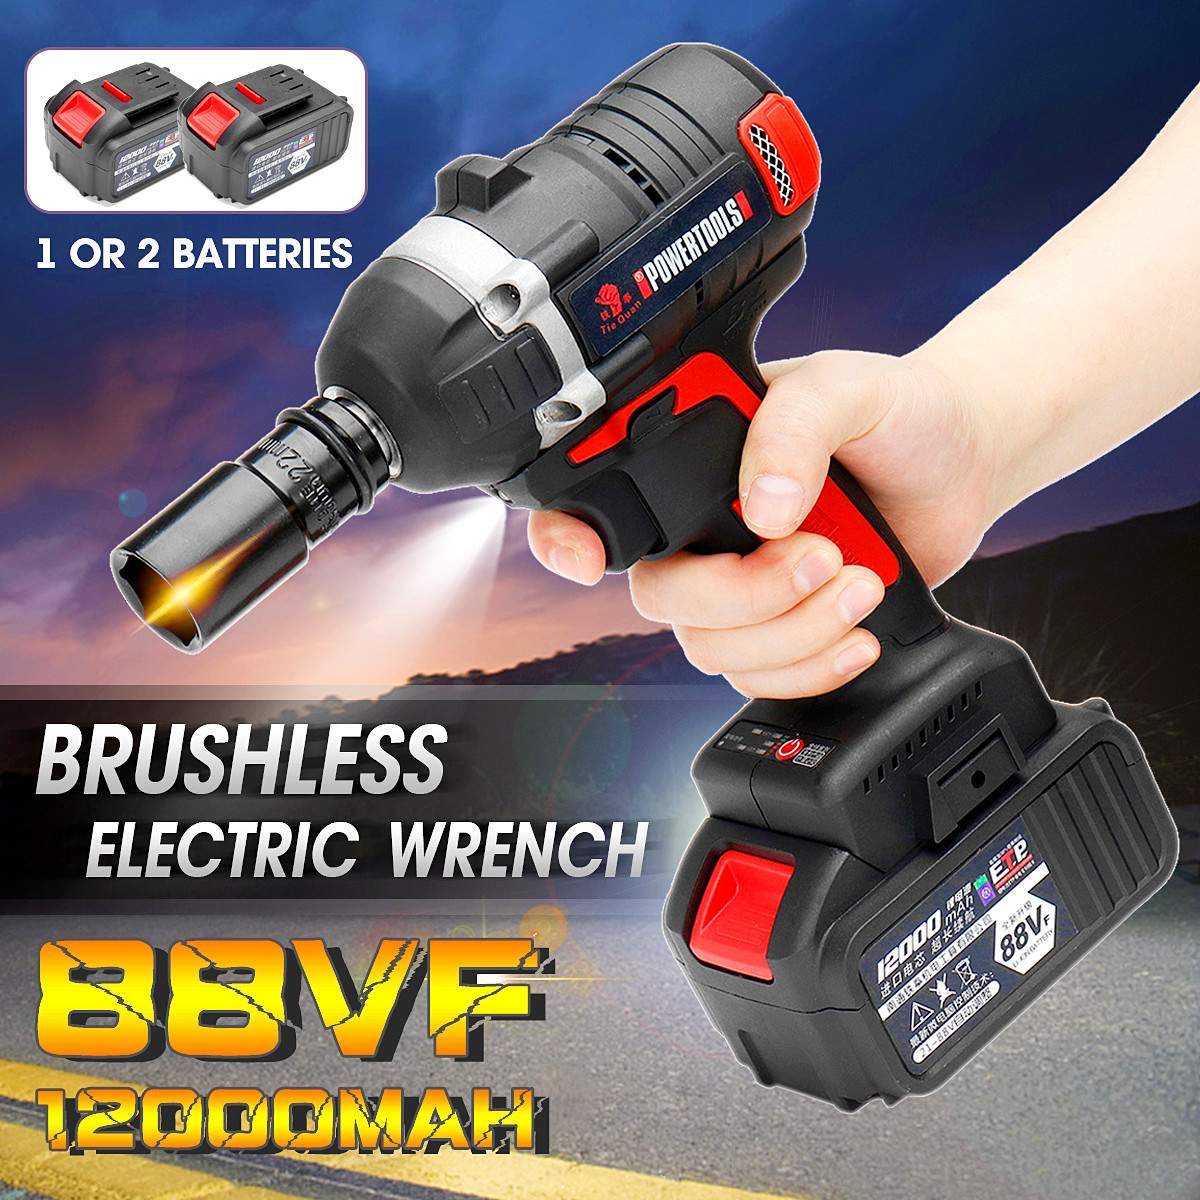 New 88V Rechargeable Brushless/Cordless Electric Wrench 330N.m Torque Household Car Wheel Socket Wrench Hand Drill Power ToolsNew 88V Rechargeable Brushless/Cordless Electric Wrench 330N.m Torque Household Car Wheel Socket Wrench Hand Drill Power Tools